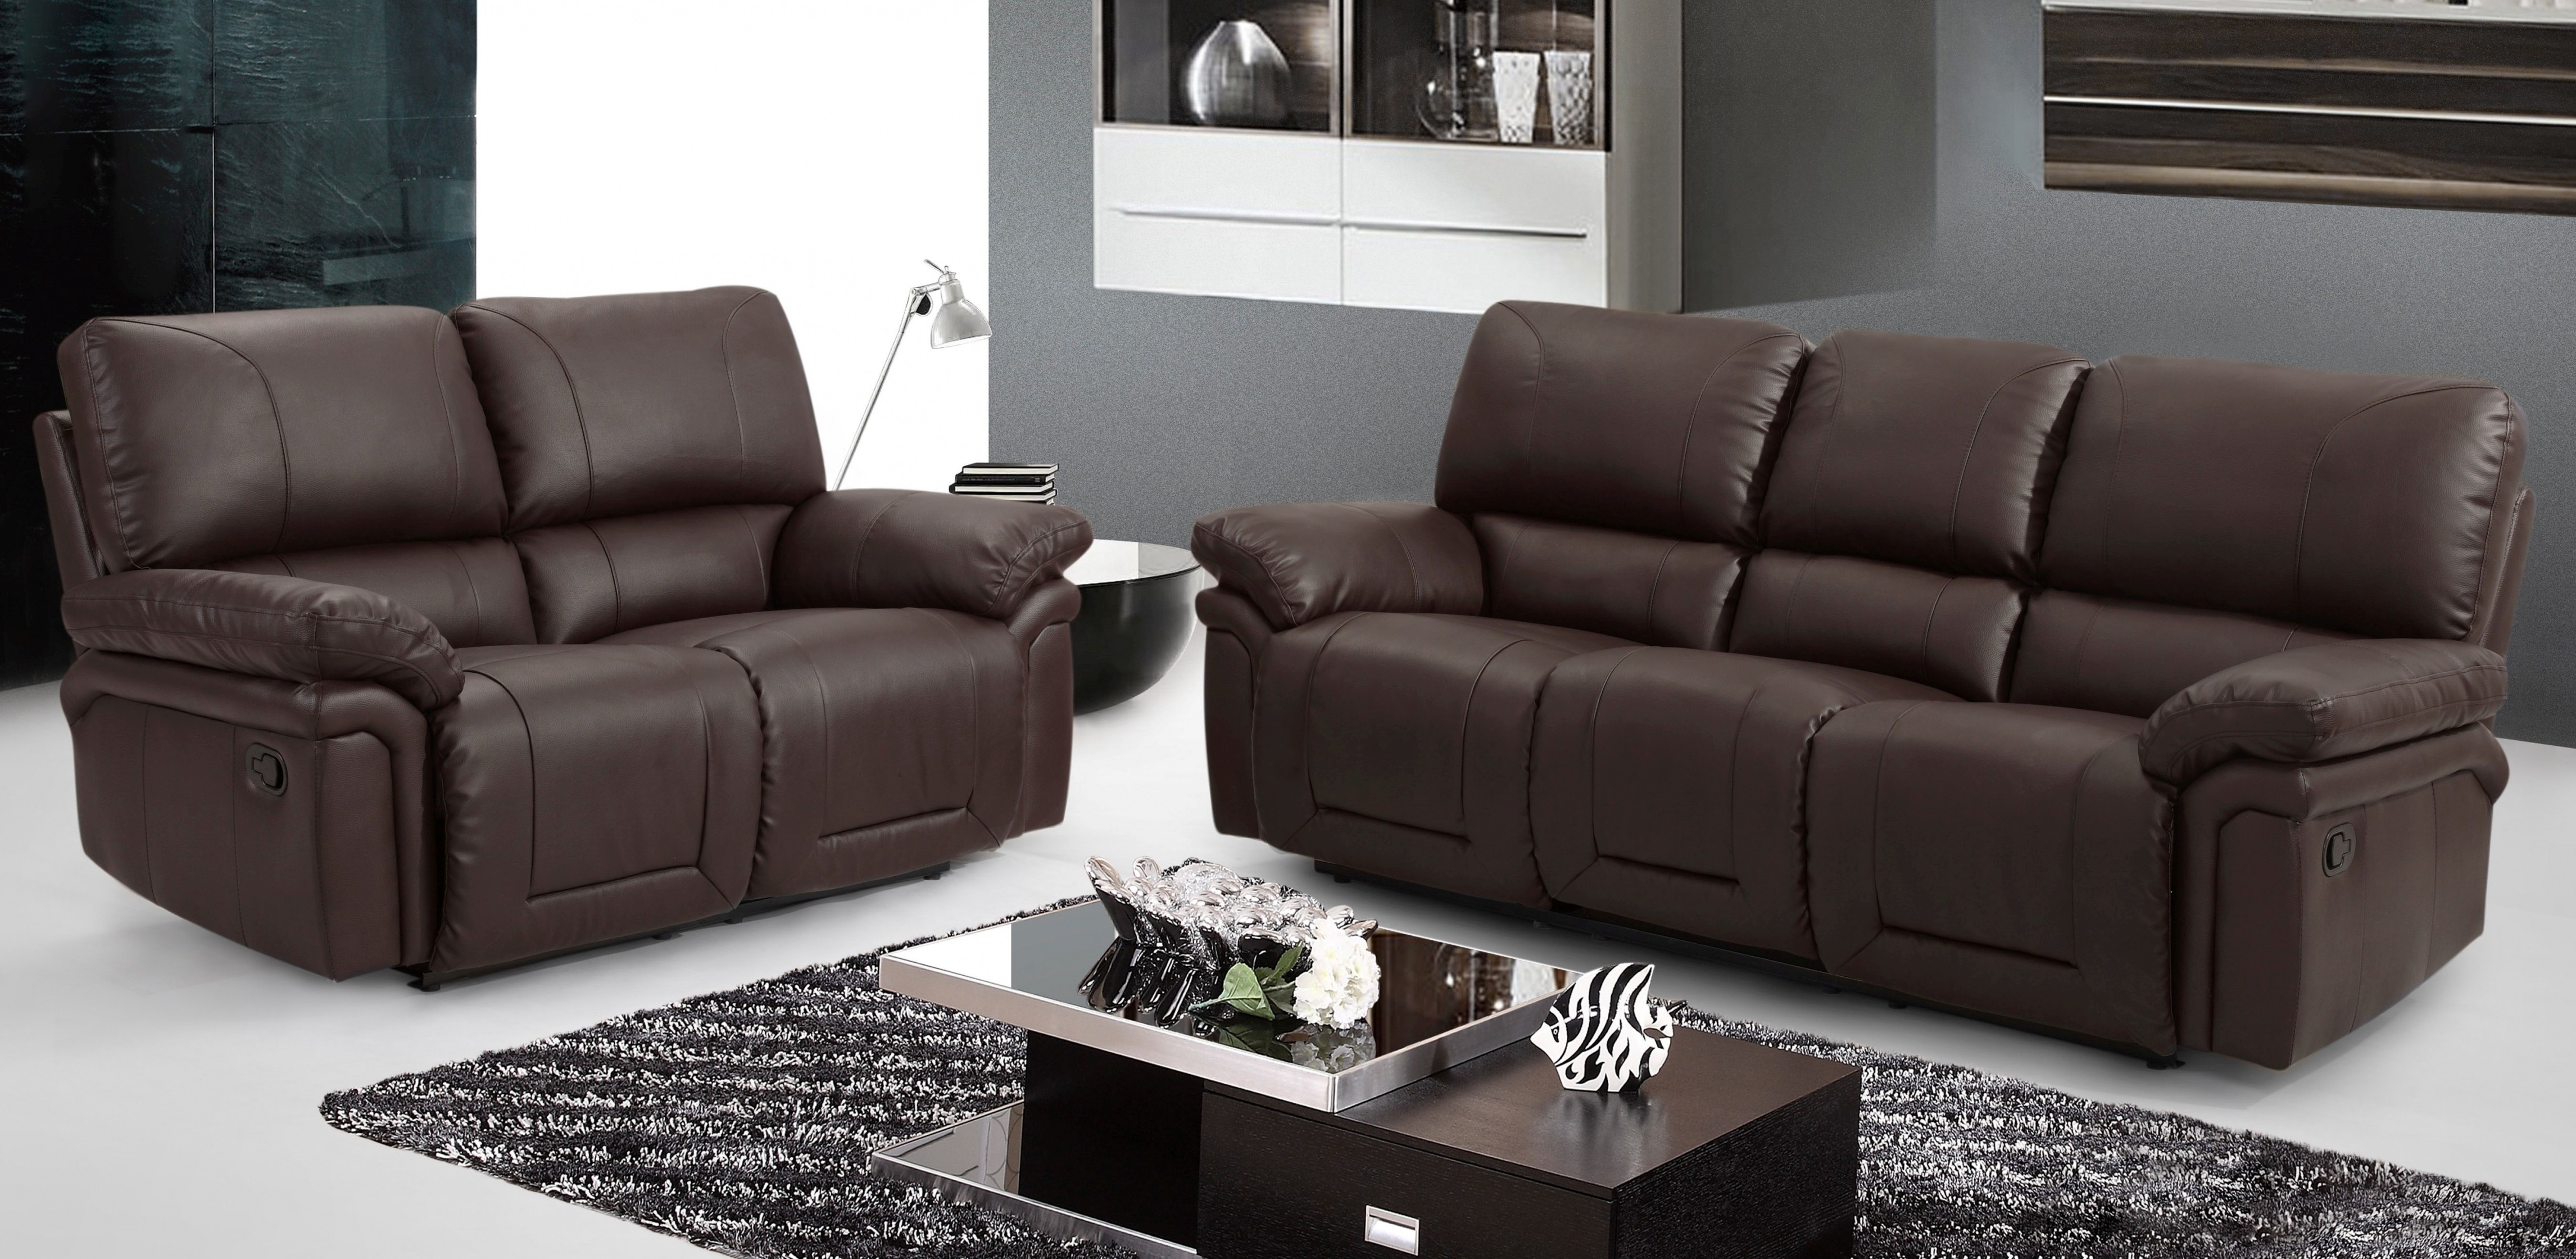 sets small living kenya for couch black leather room cheap in luxury line designs nj of set sofa